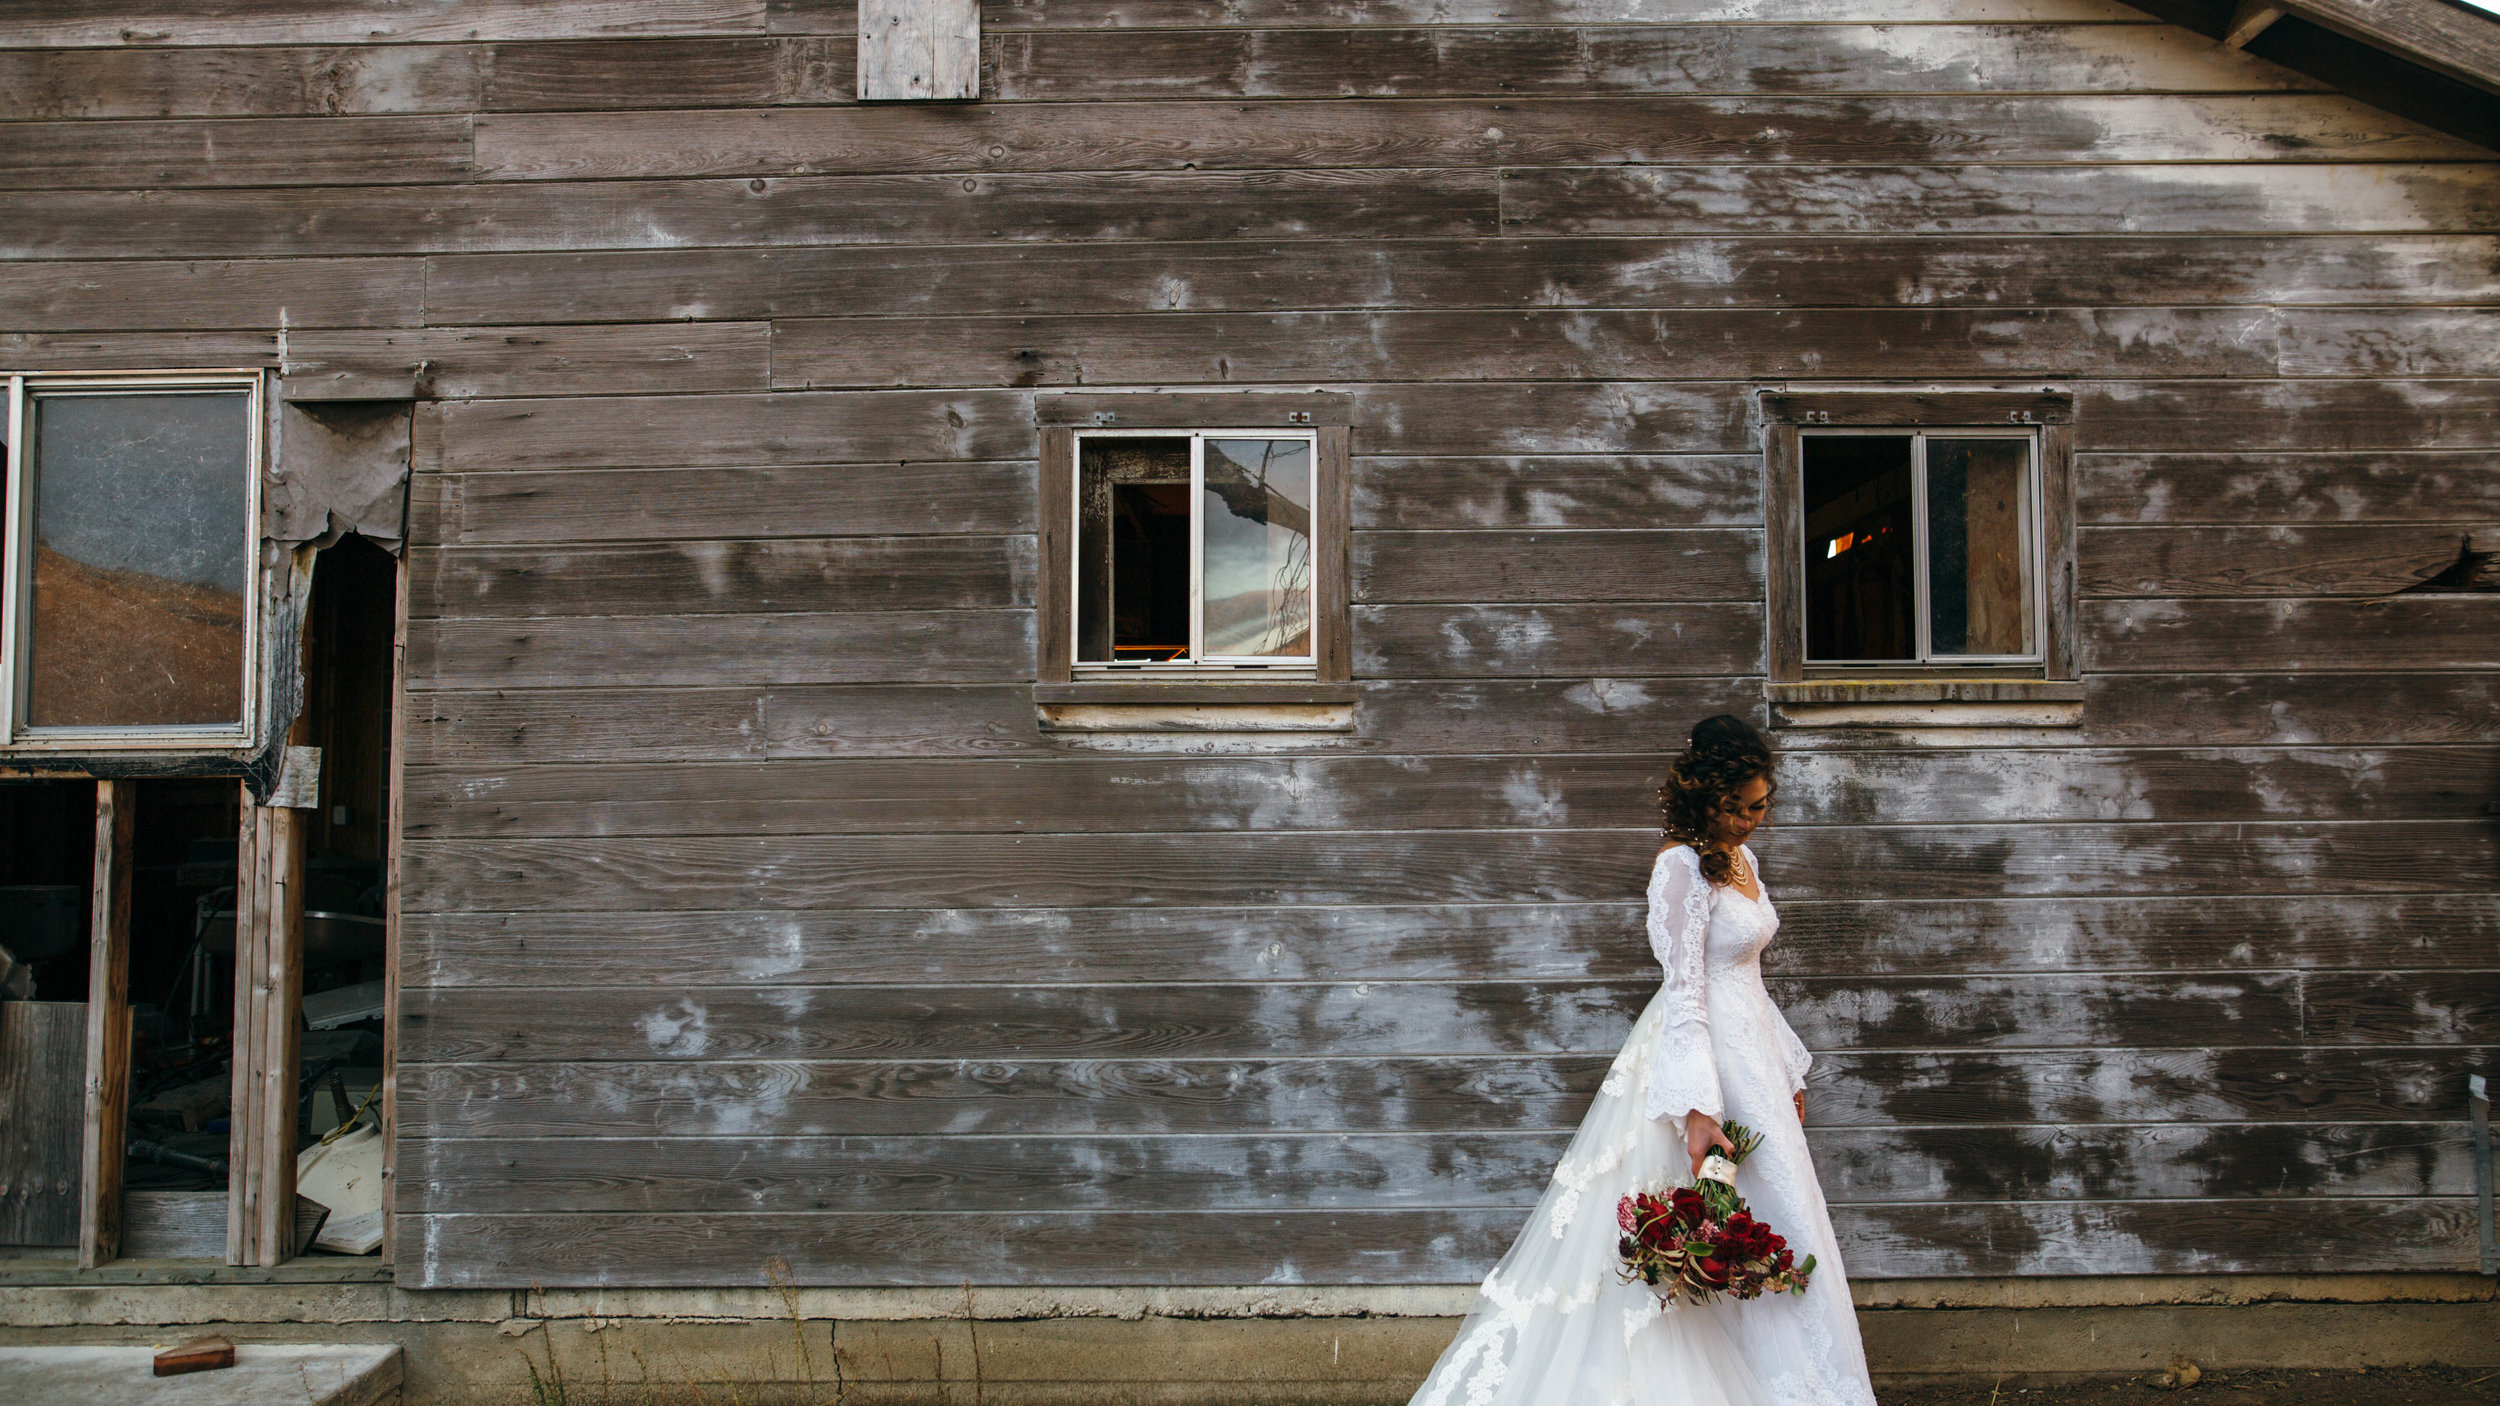 Brides + old buildings forever